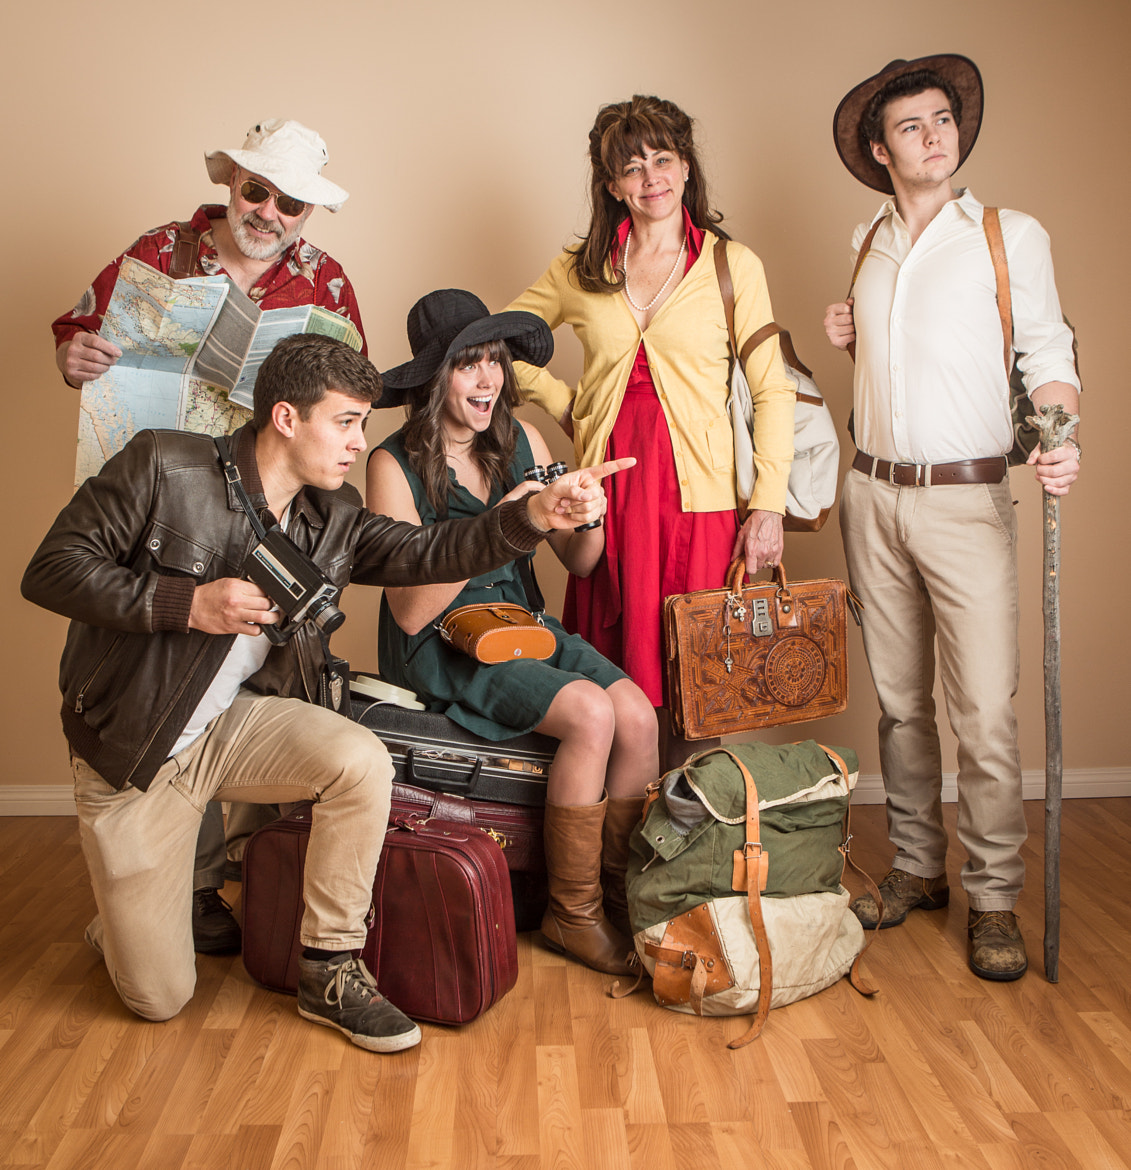 Photograph Family of Travelers by Dave Brosha on 500px